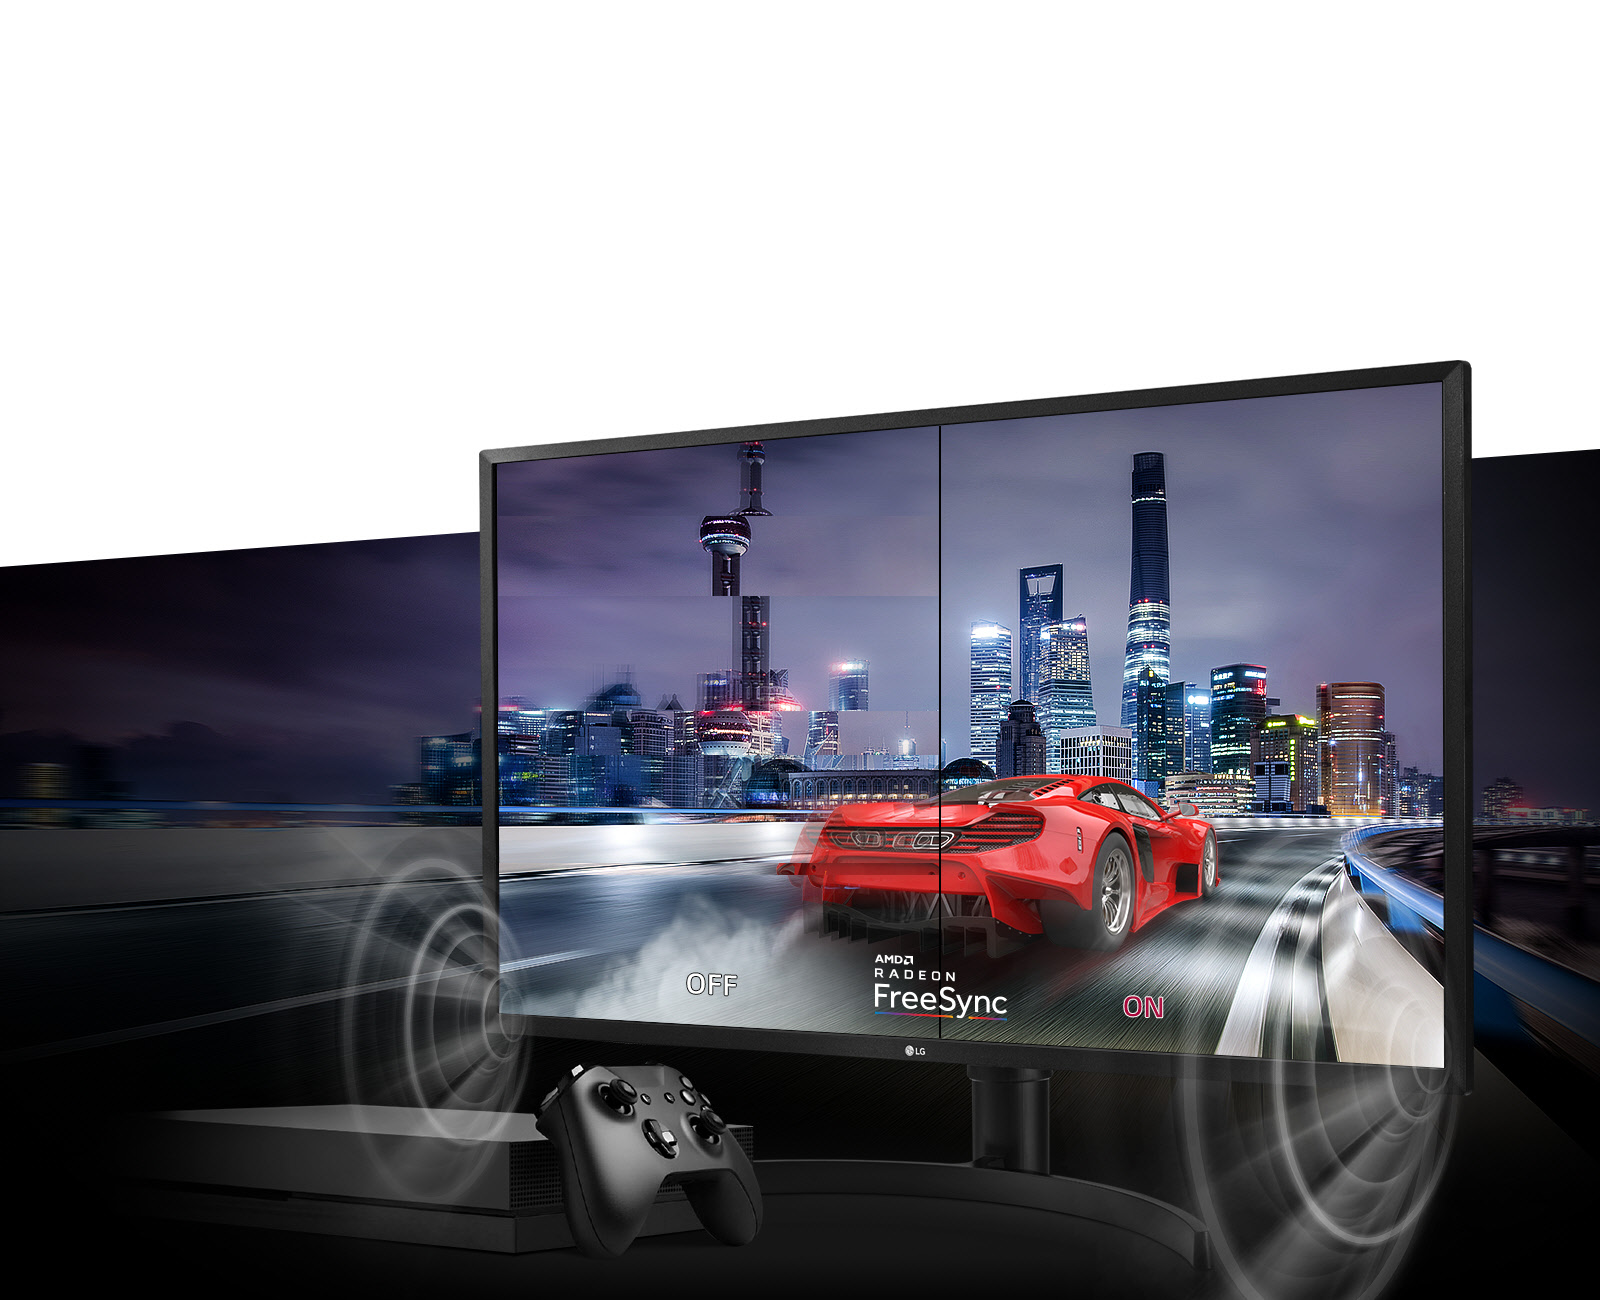 LG 32UK550-B monitor facing forward, slightly to the left, showing a sports car racing through a highway next to a city skyline at night. An Xbox One and controller are in front of the monitor